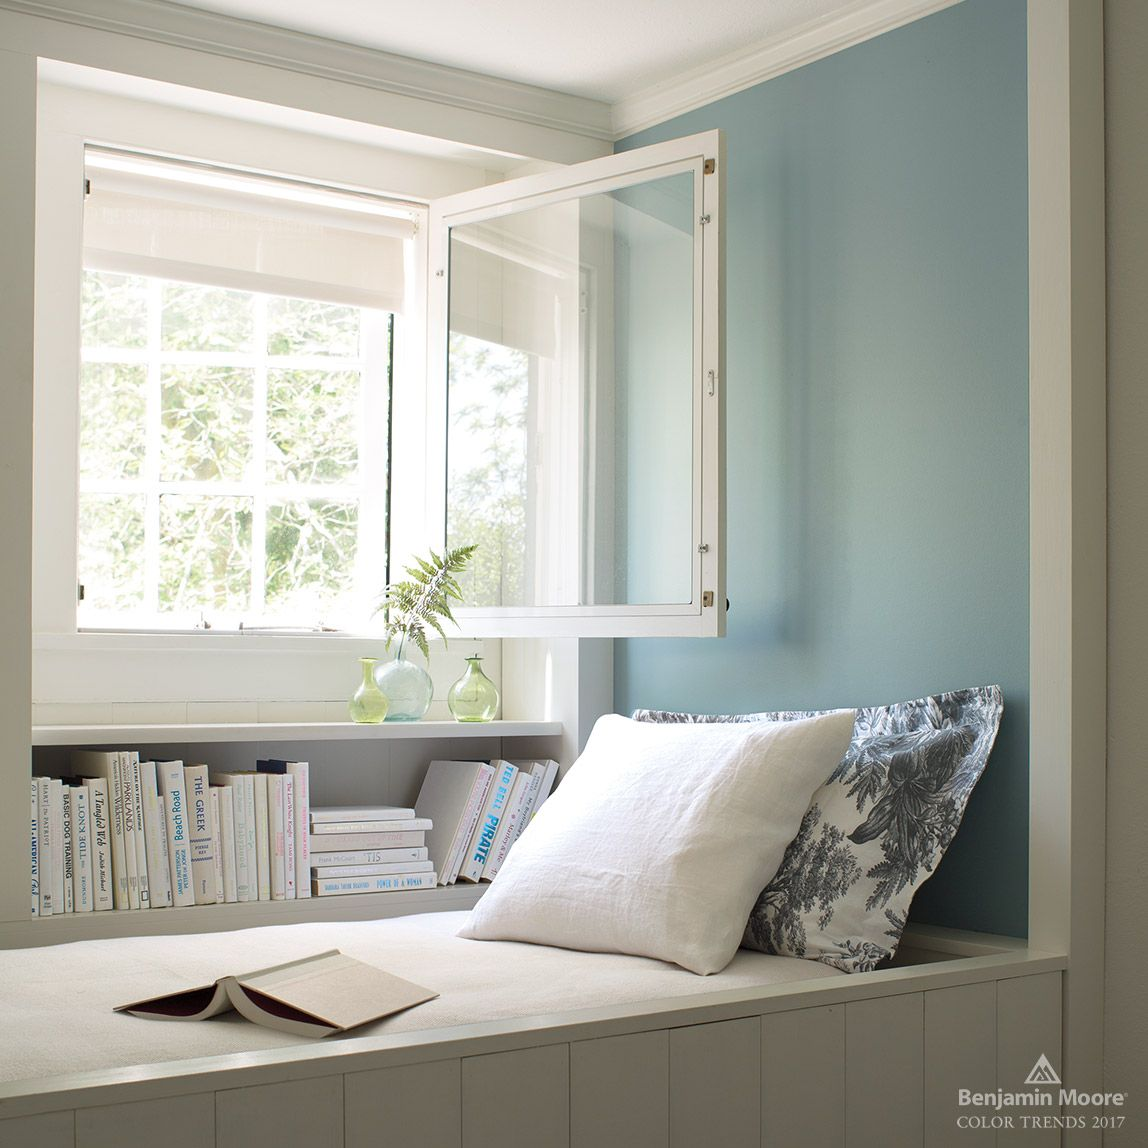 Colors For Walls: Benjamin Moore, Light Blue Walls And